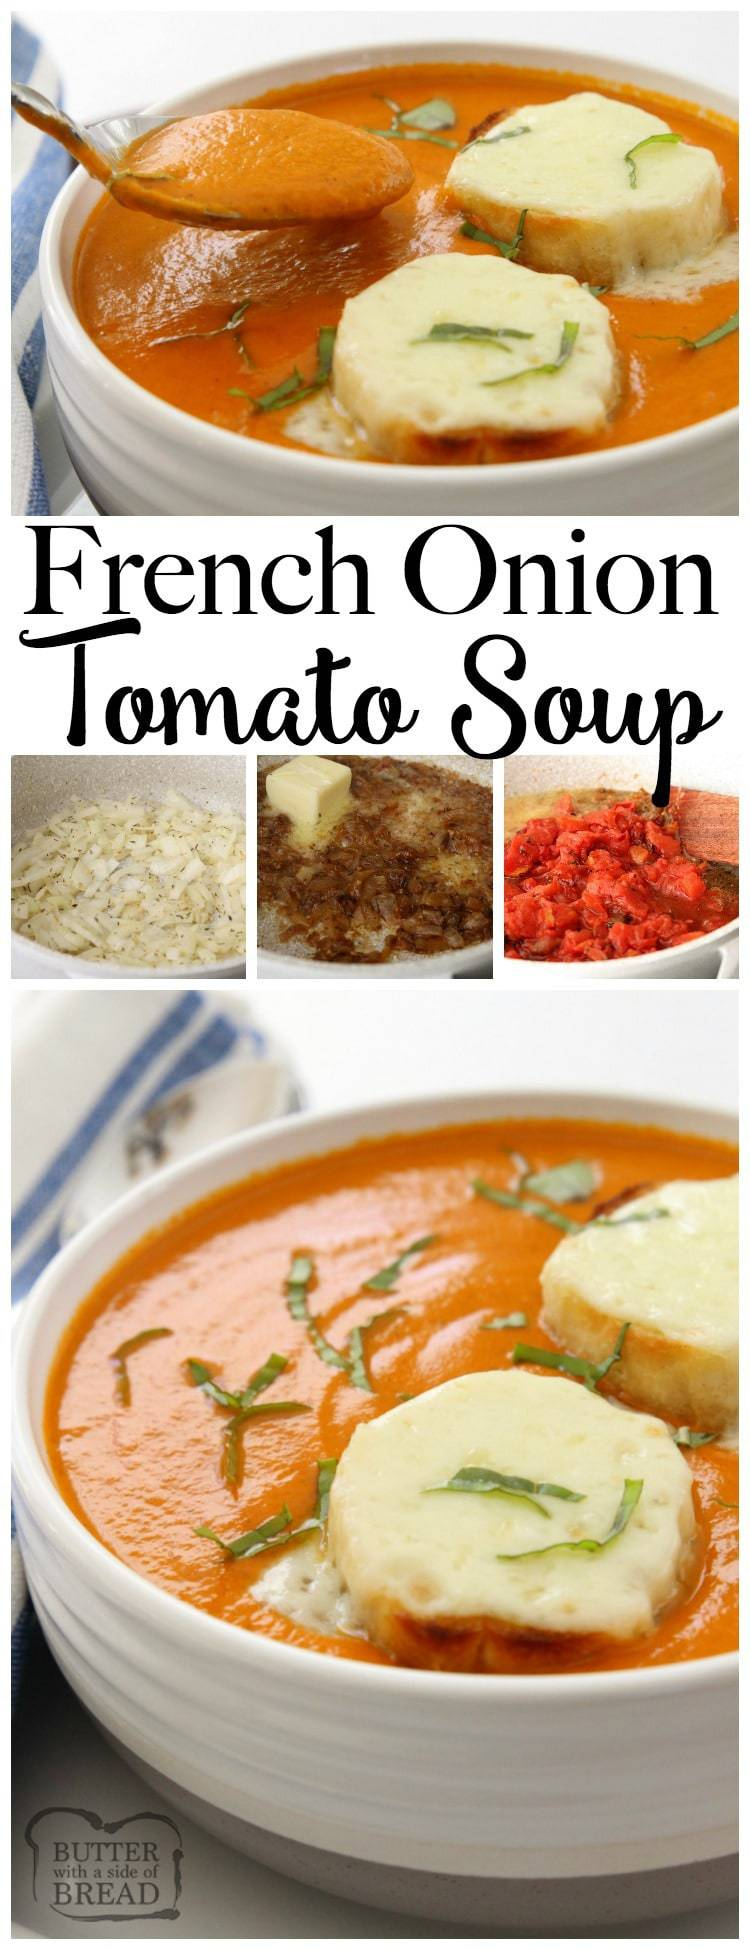 French Onion Tomato Soup combines two favorites in an easy to make, delicious homemade soup. Fire roasted #tomatoes, sweet #onion, butter and broth blend together in this incredible #soup. #Recipe from Butter With A Side of Bread #tomatosoup #frenchonion #comfortfood #easysouprecipe